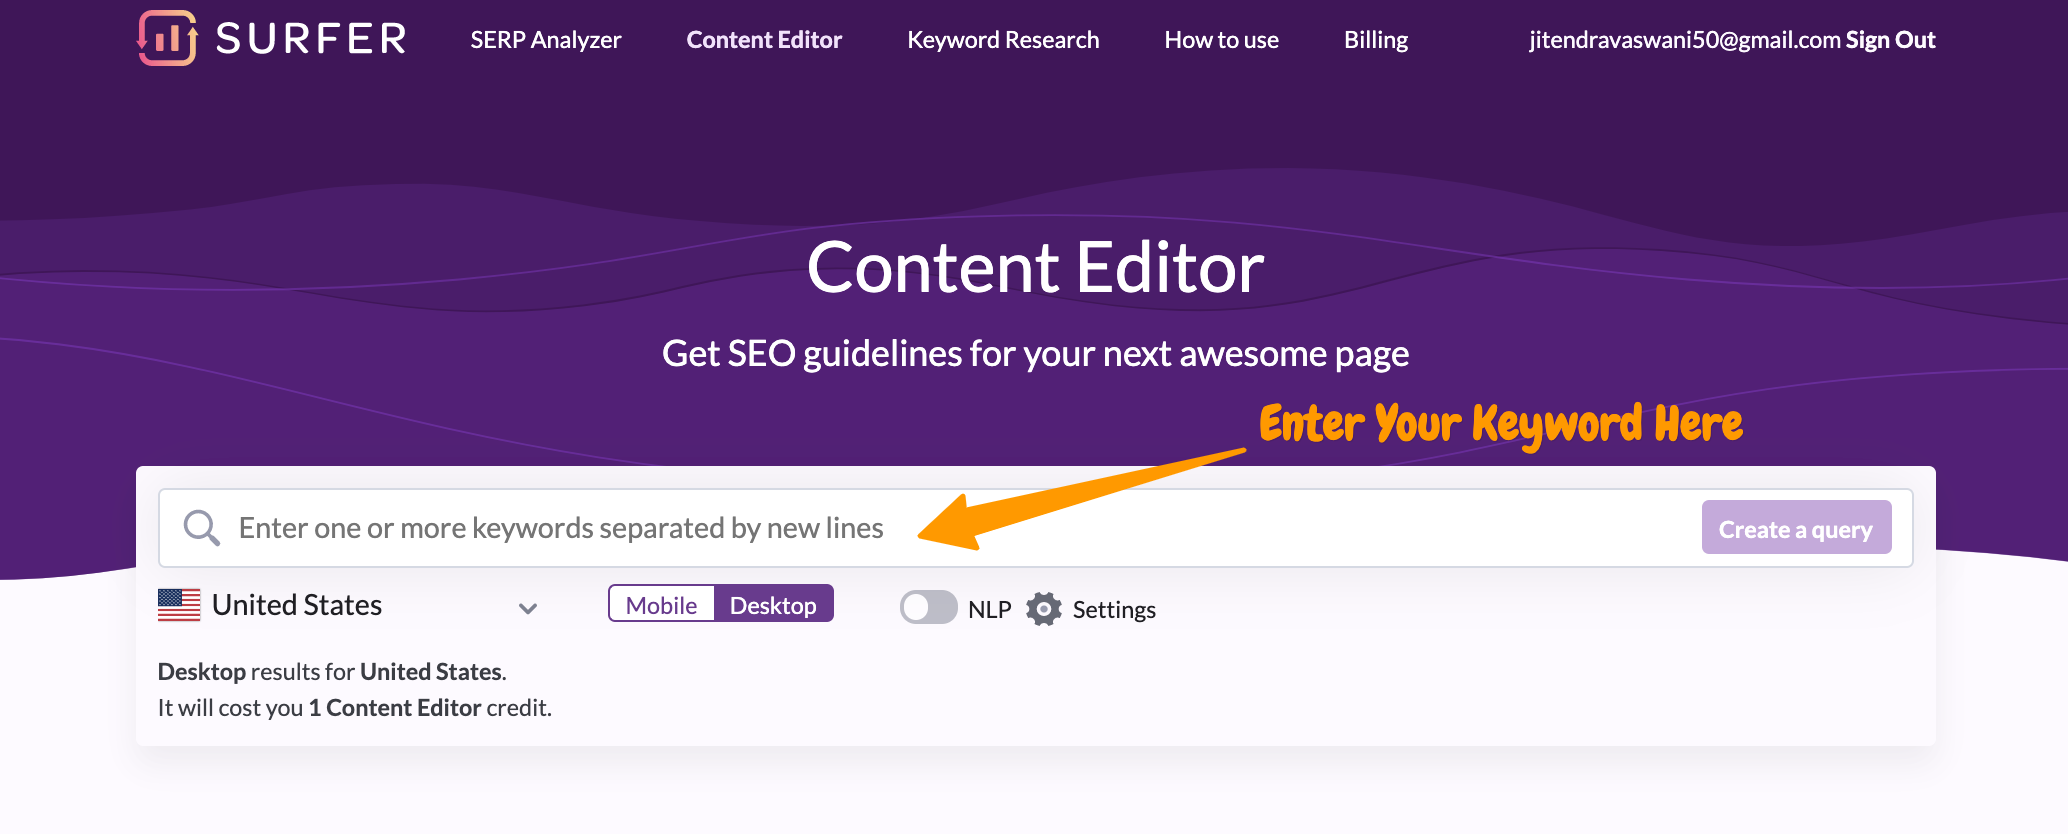 Enter your keywords here